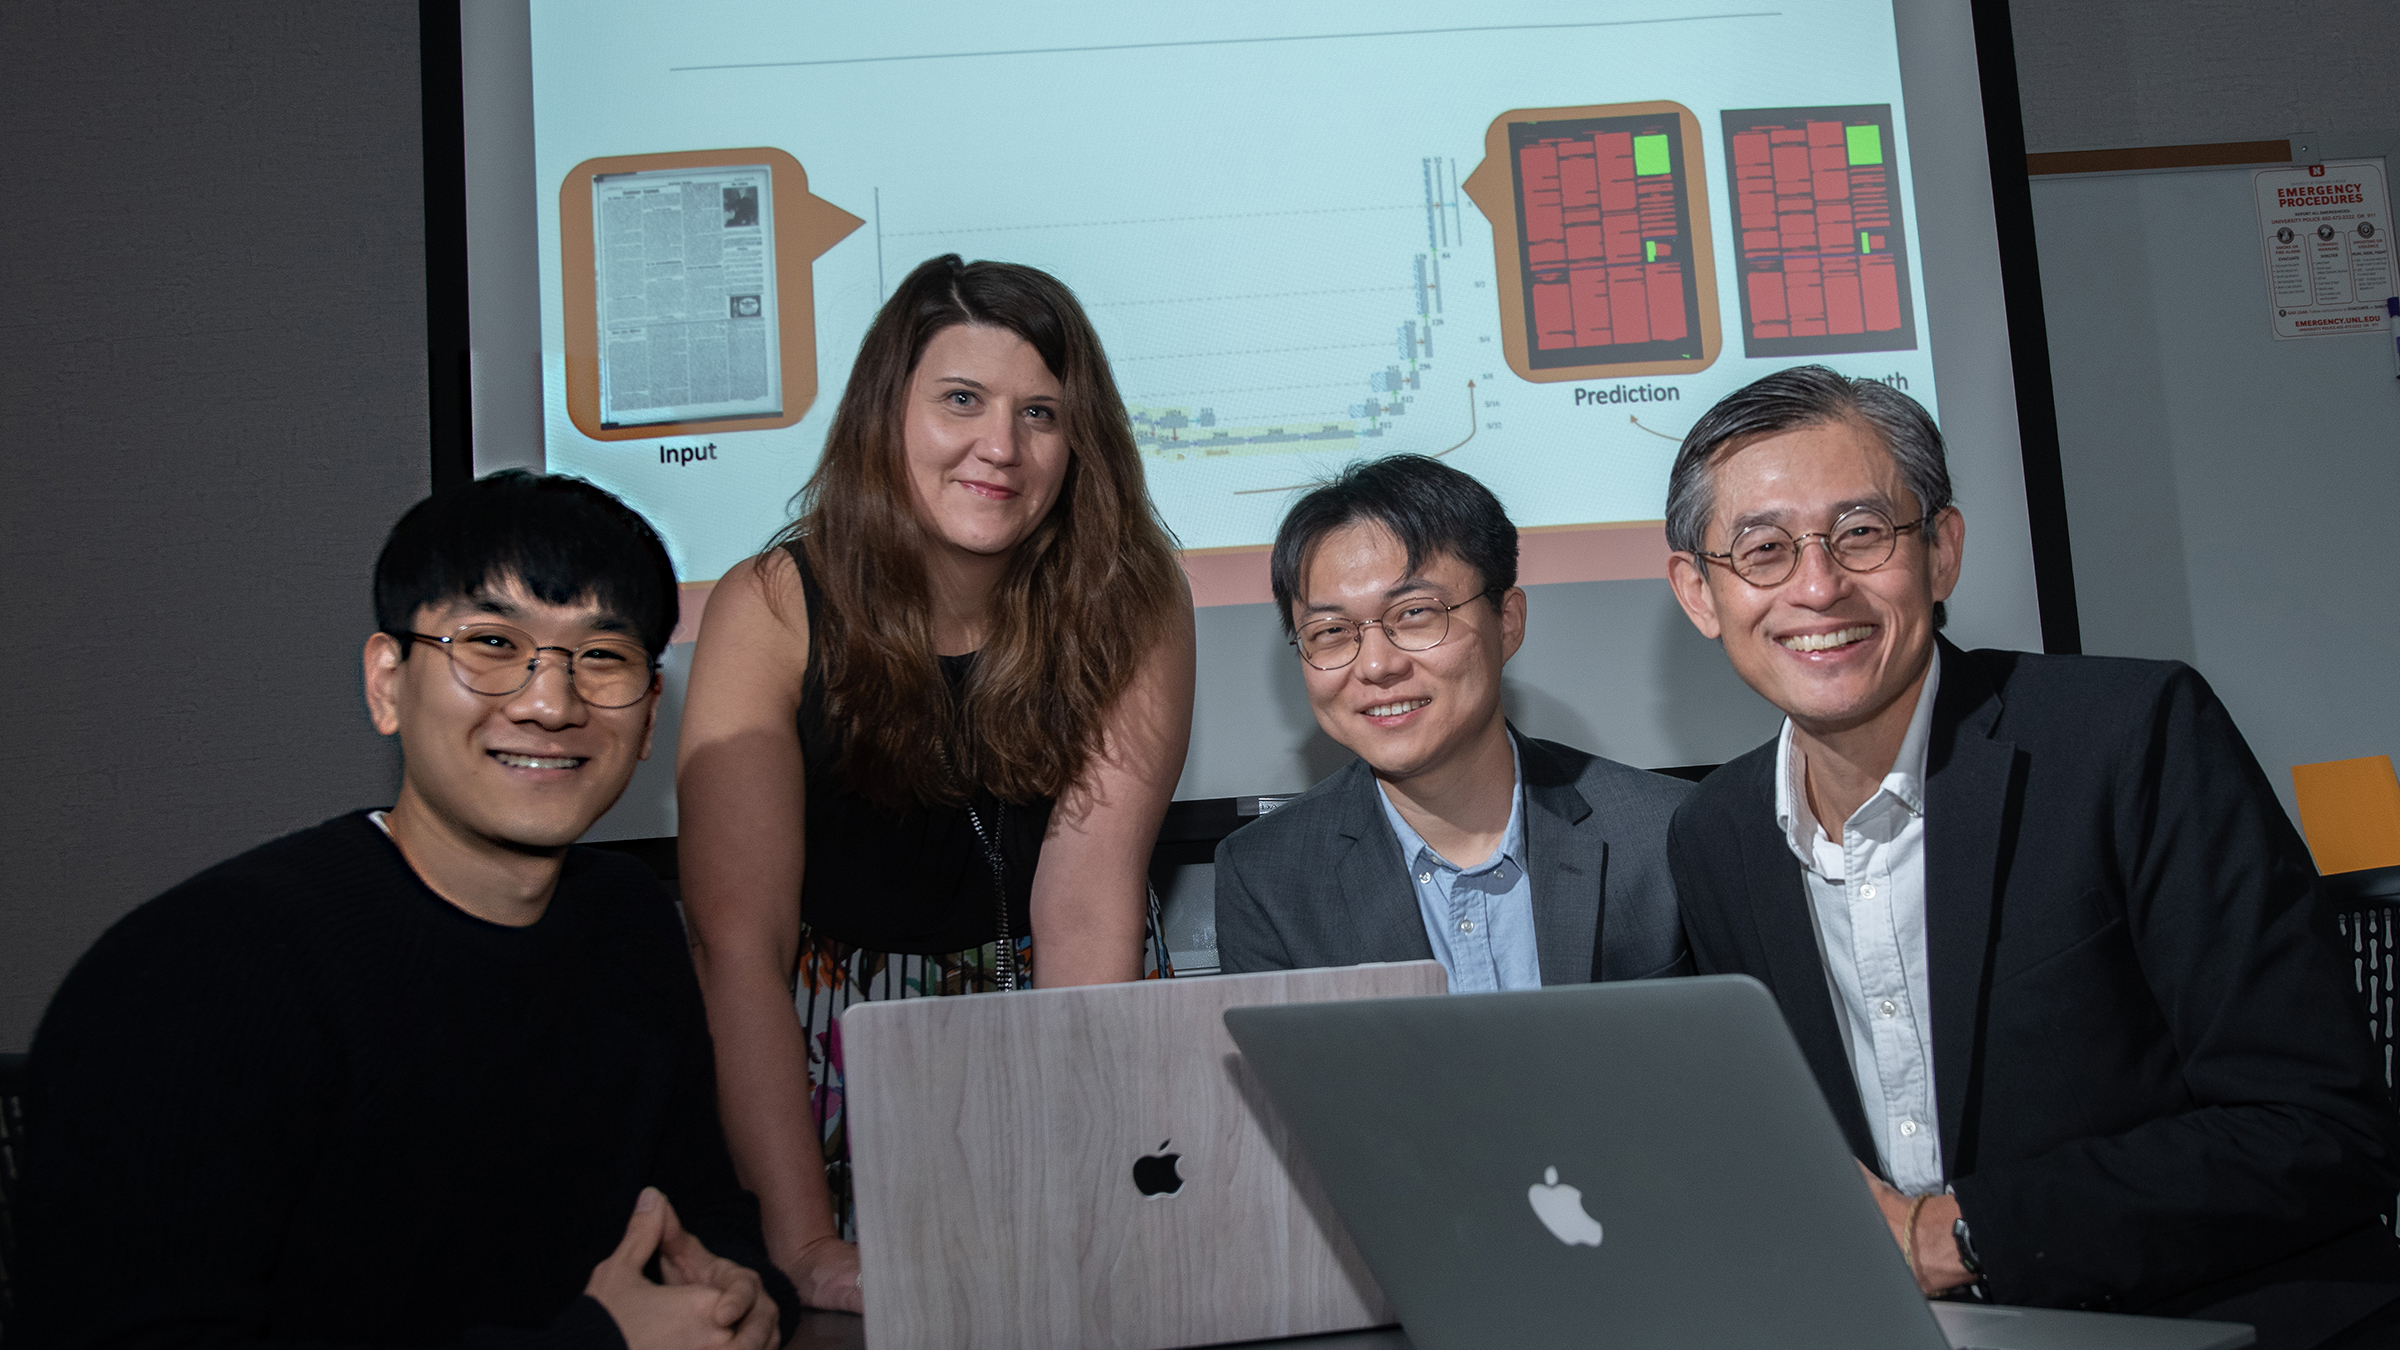 Members of the Aida lab (from left) Chulwood Pack, graduate student; Elizabeth Lorang, associate professor in University Libraries; Yi Liu, graduate student; and Leen-Kiat Soh, professor of computer science and engineering, recently completed research on using machine learning in digital libraries for the United States Library of Congress.